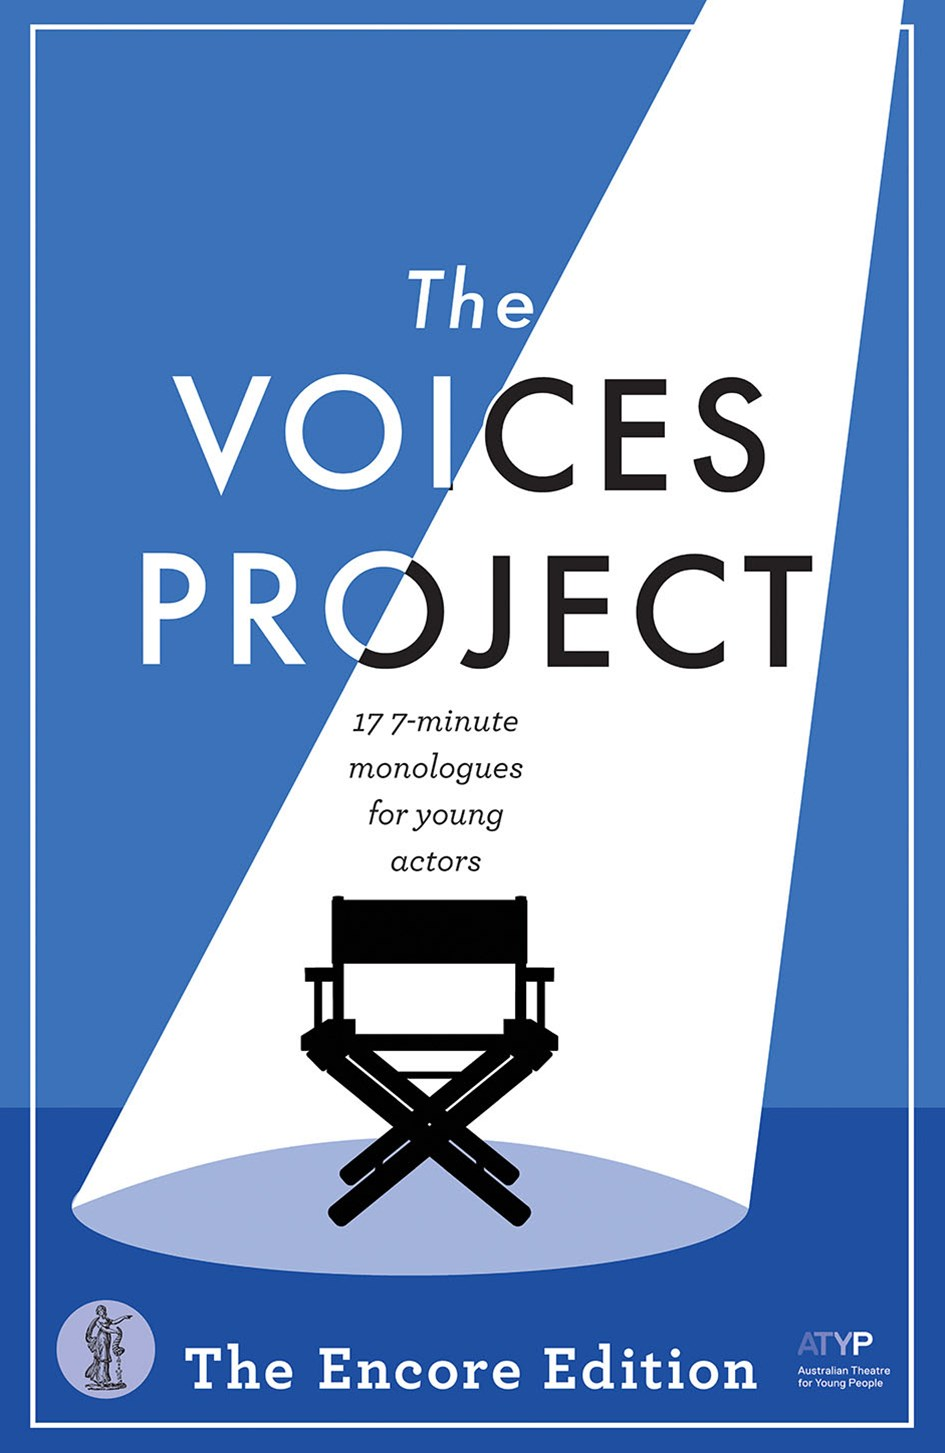 The Voices Project: The Encore Edition